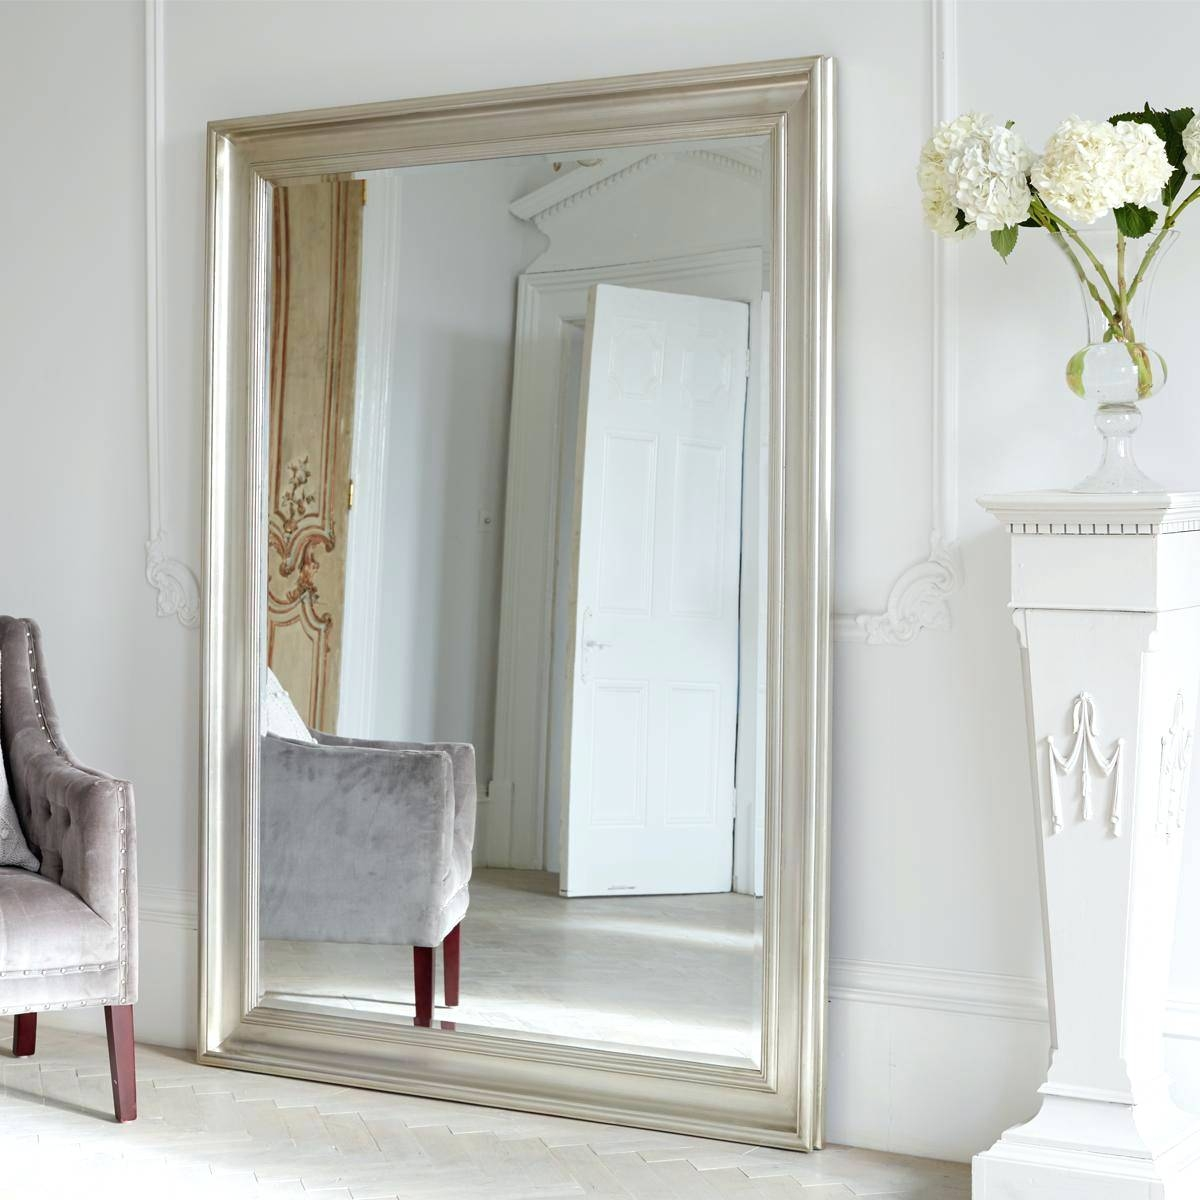 Wall Mirrors ~ Cheap Full Length Mirror Uk Full Length Wall Mirror With Regard To Antique Full Length Wall Mirrors (View 4 of 15)